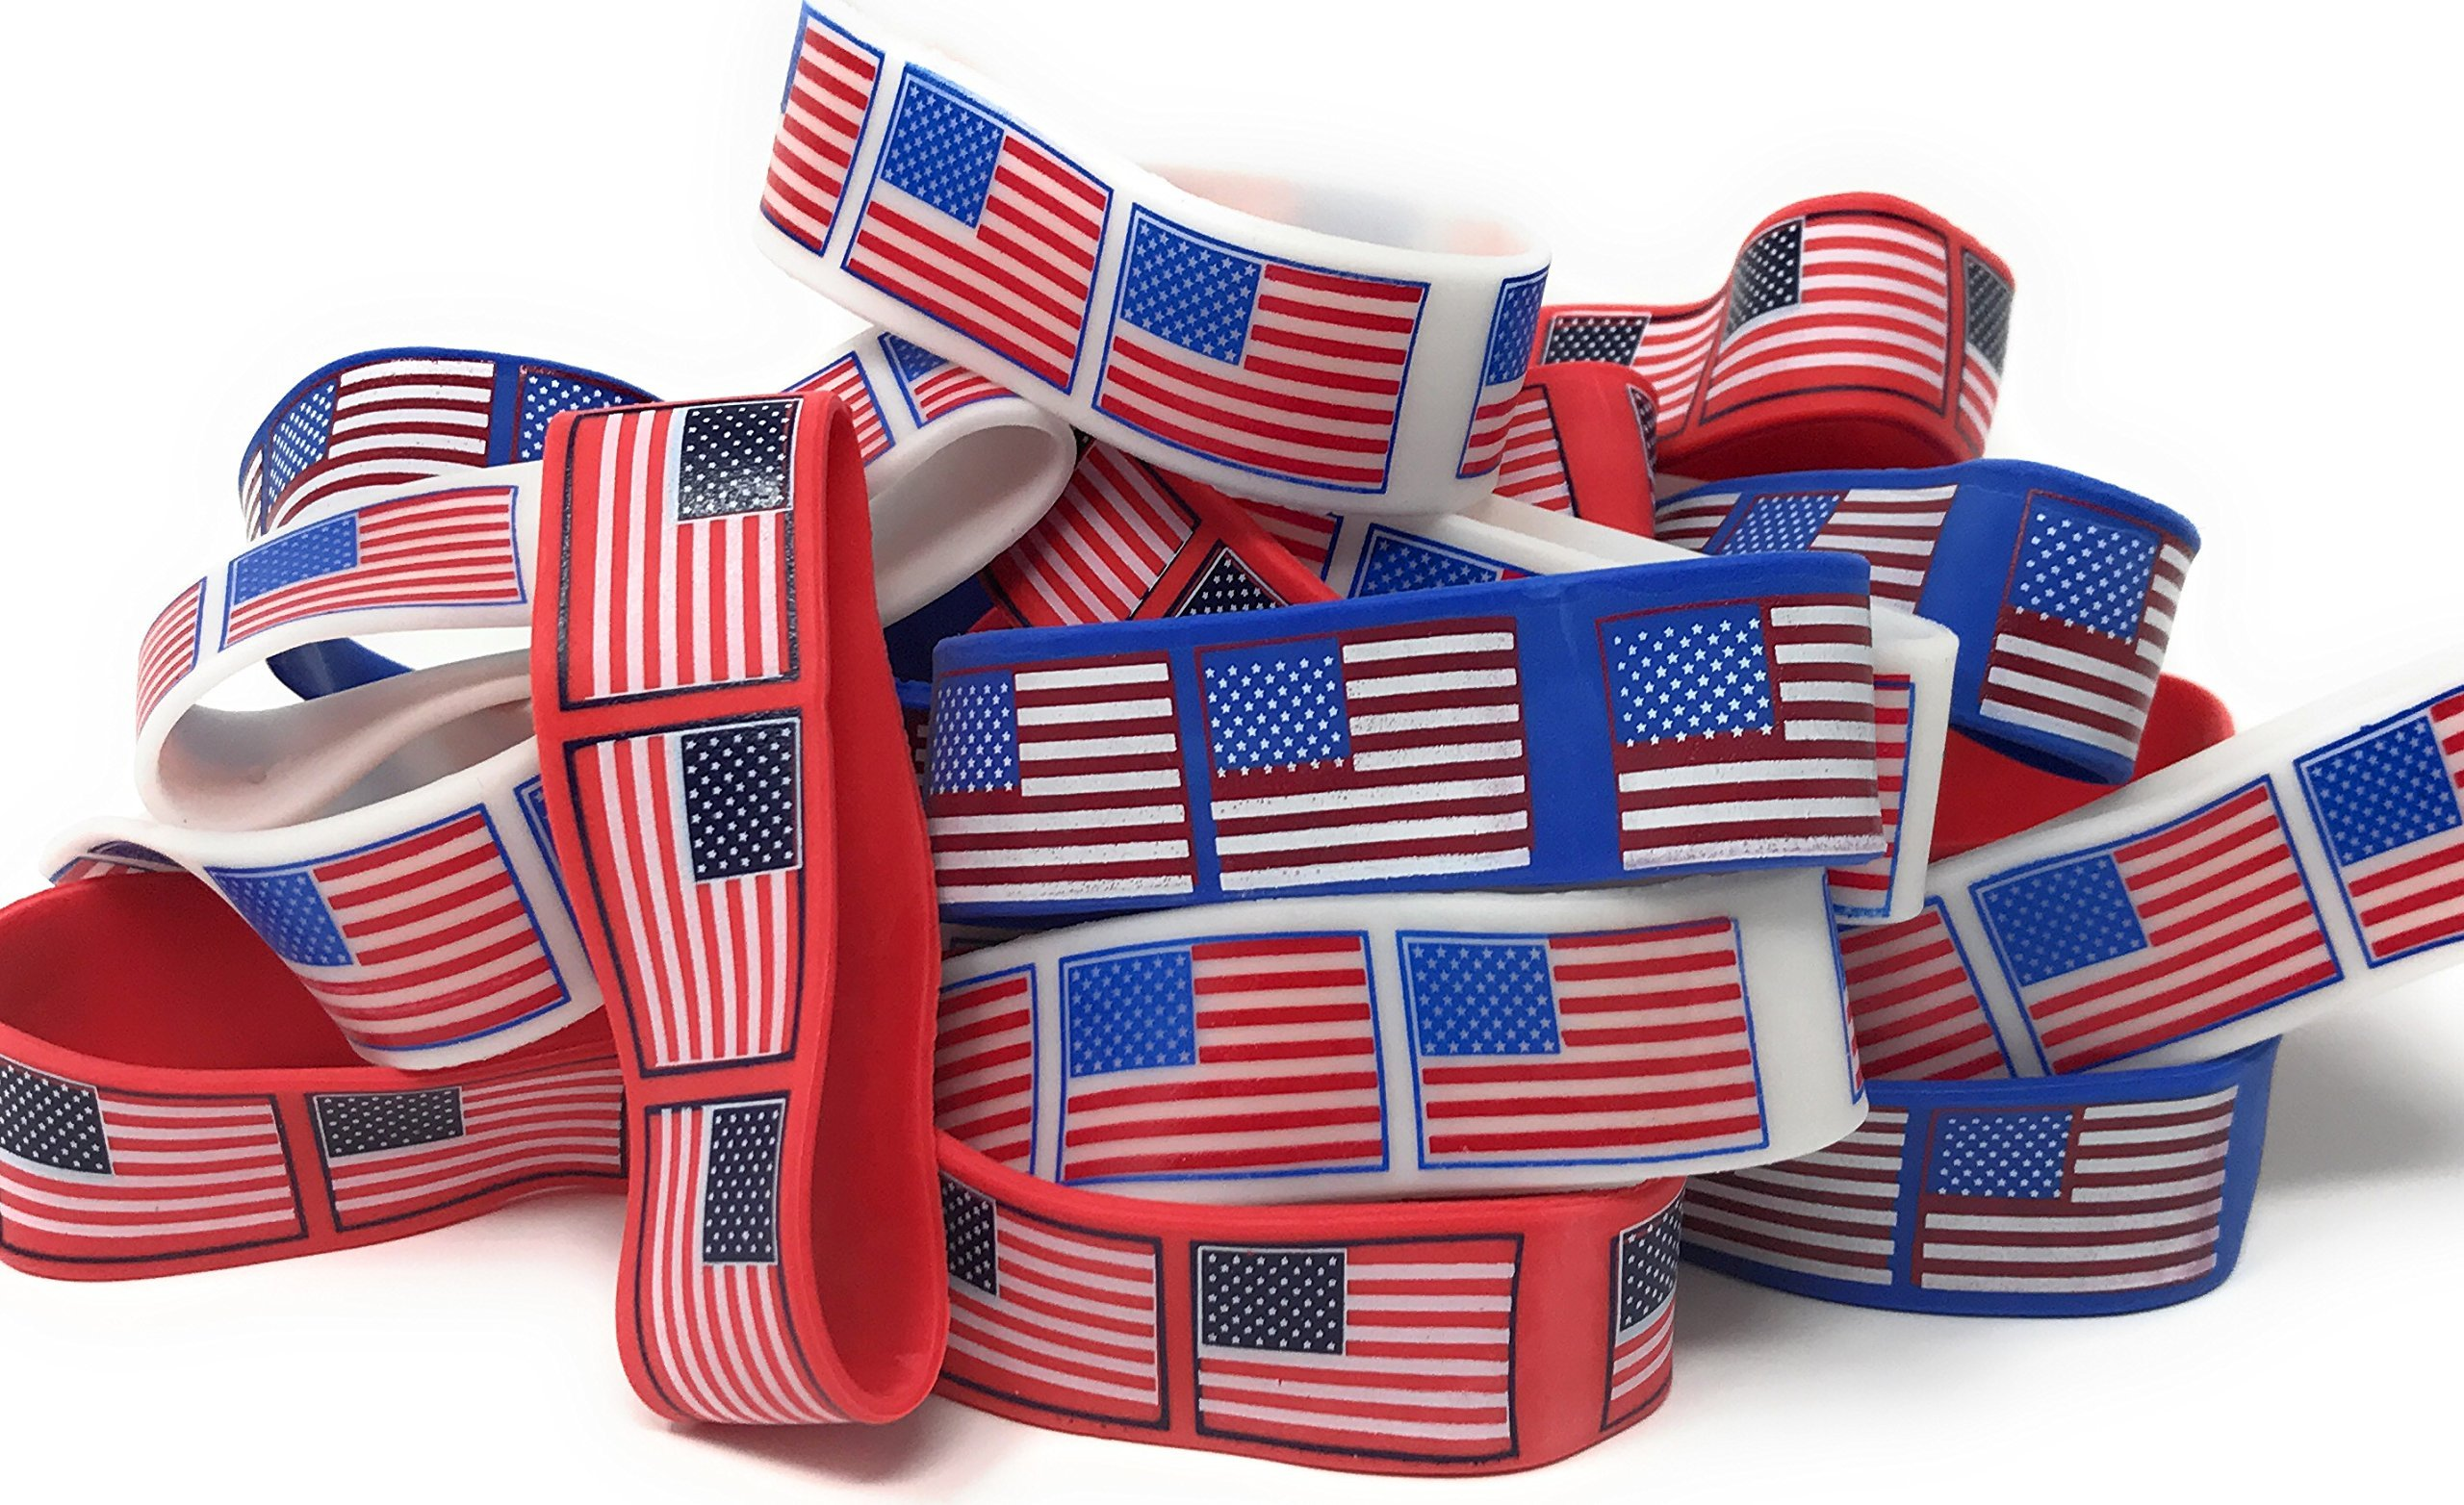 Bulk 48 Pack of American Flag Bracelets - Ideal Party Favors for Fourth of July Parades, 4th of July Parties, BBQ's, Picnics and Family Events by SVT (Image #1)